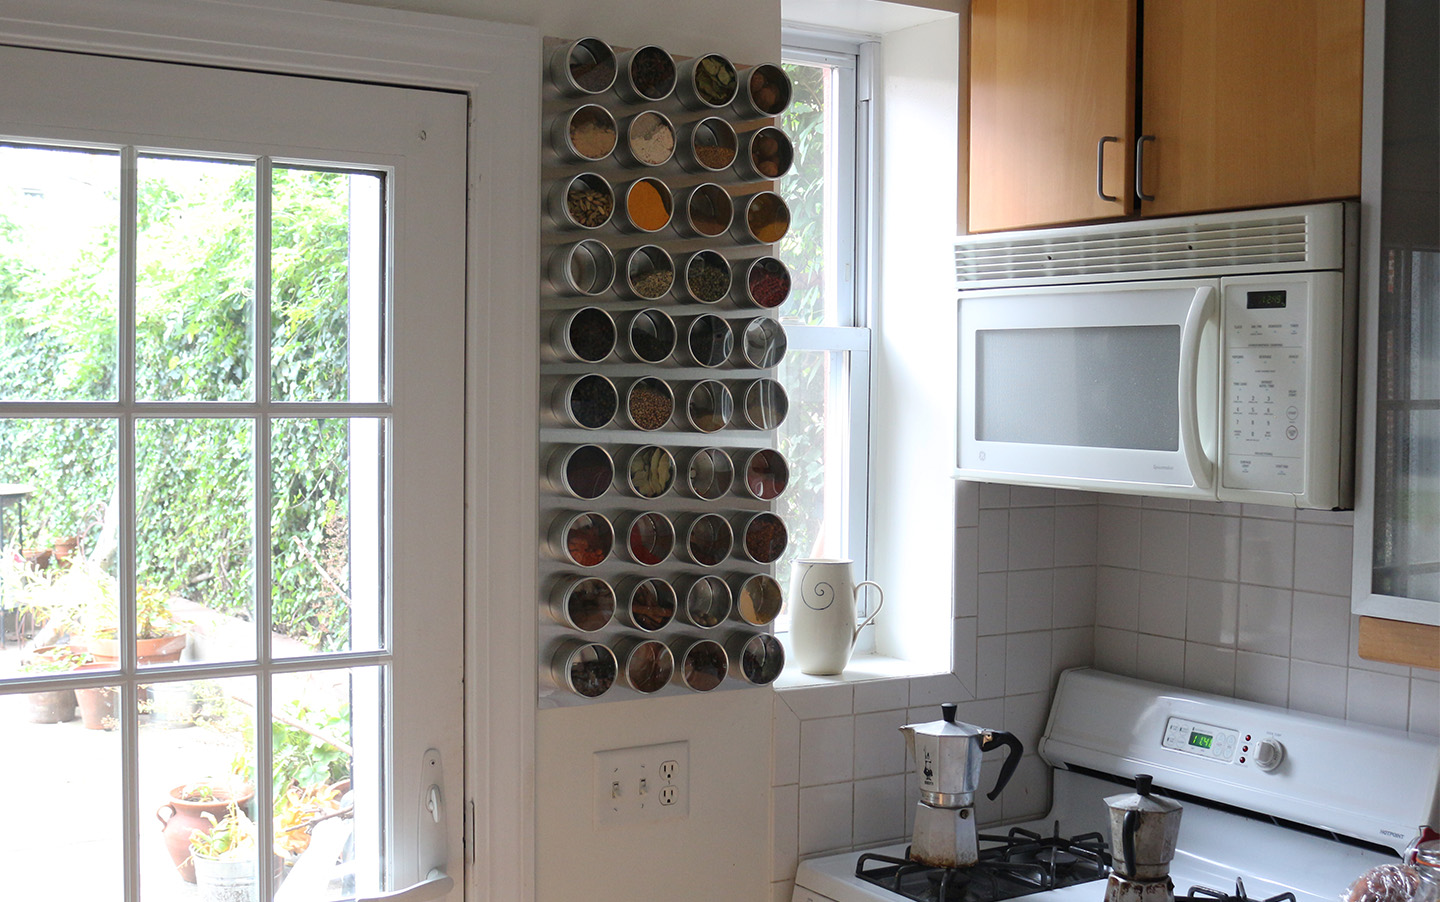 66 Square Feet (Plus): How to make a magnetic spice rack ...